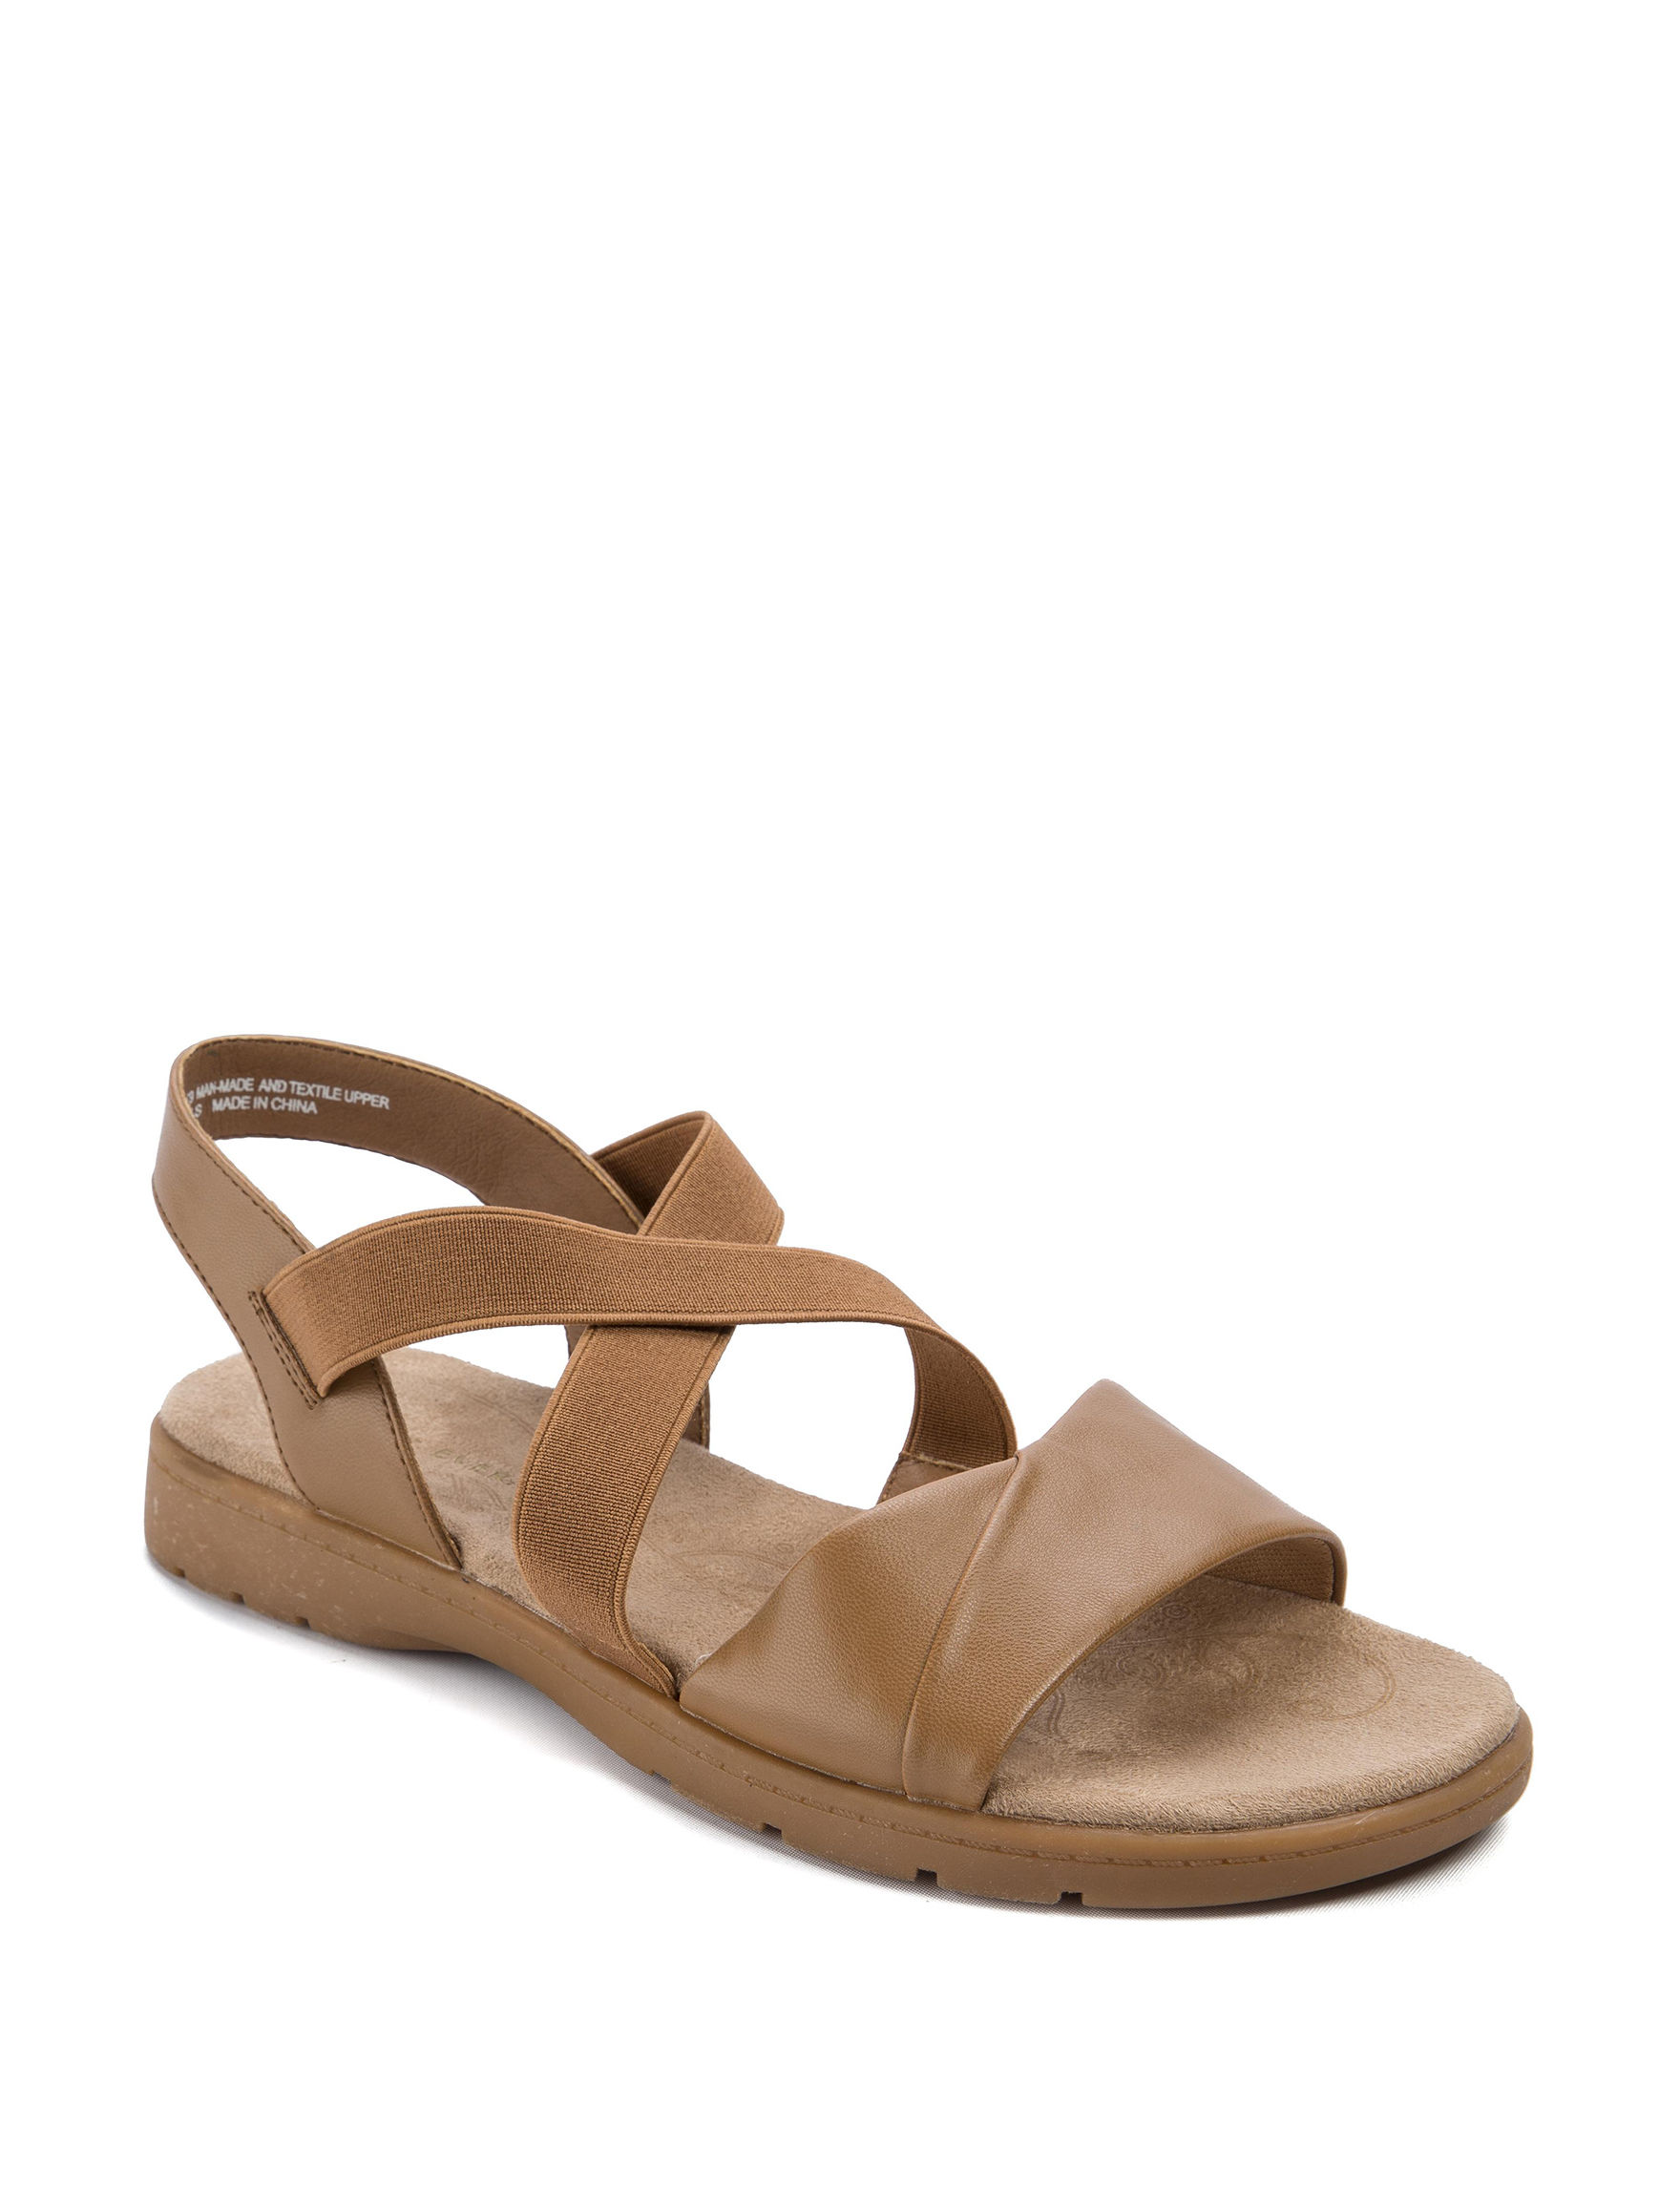 Wear. Ever. Tan Flat Sandals Footbed